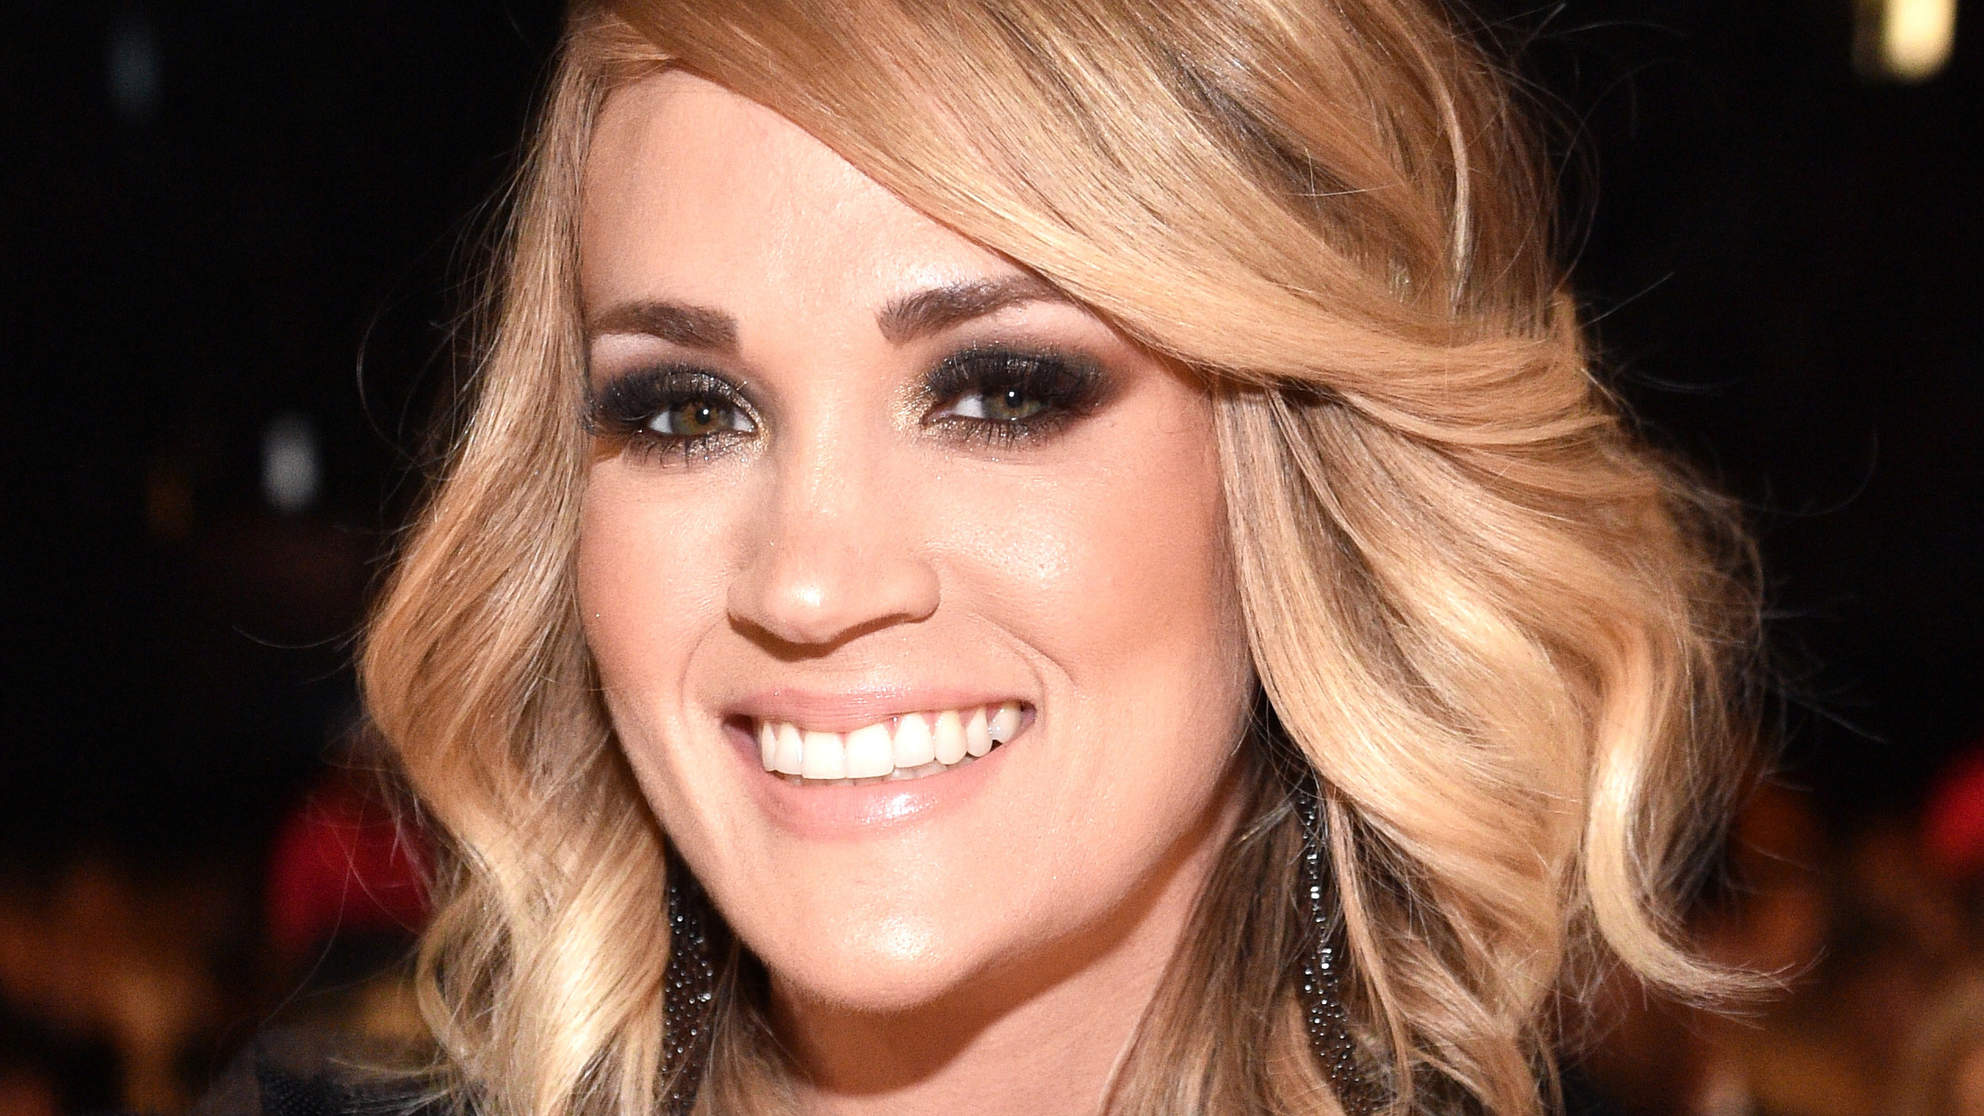 Clone of Carrie Underwood Shares a New Selfie Post-Fall, and Her Fans Couldn't Be More Supportive